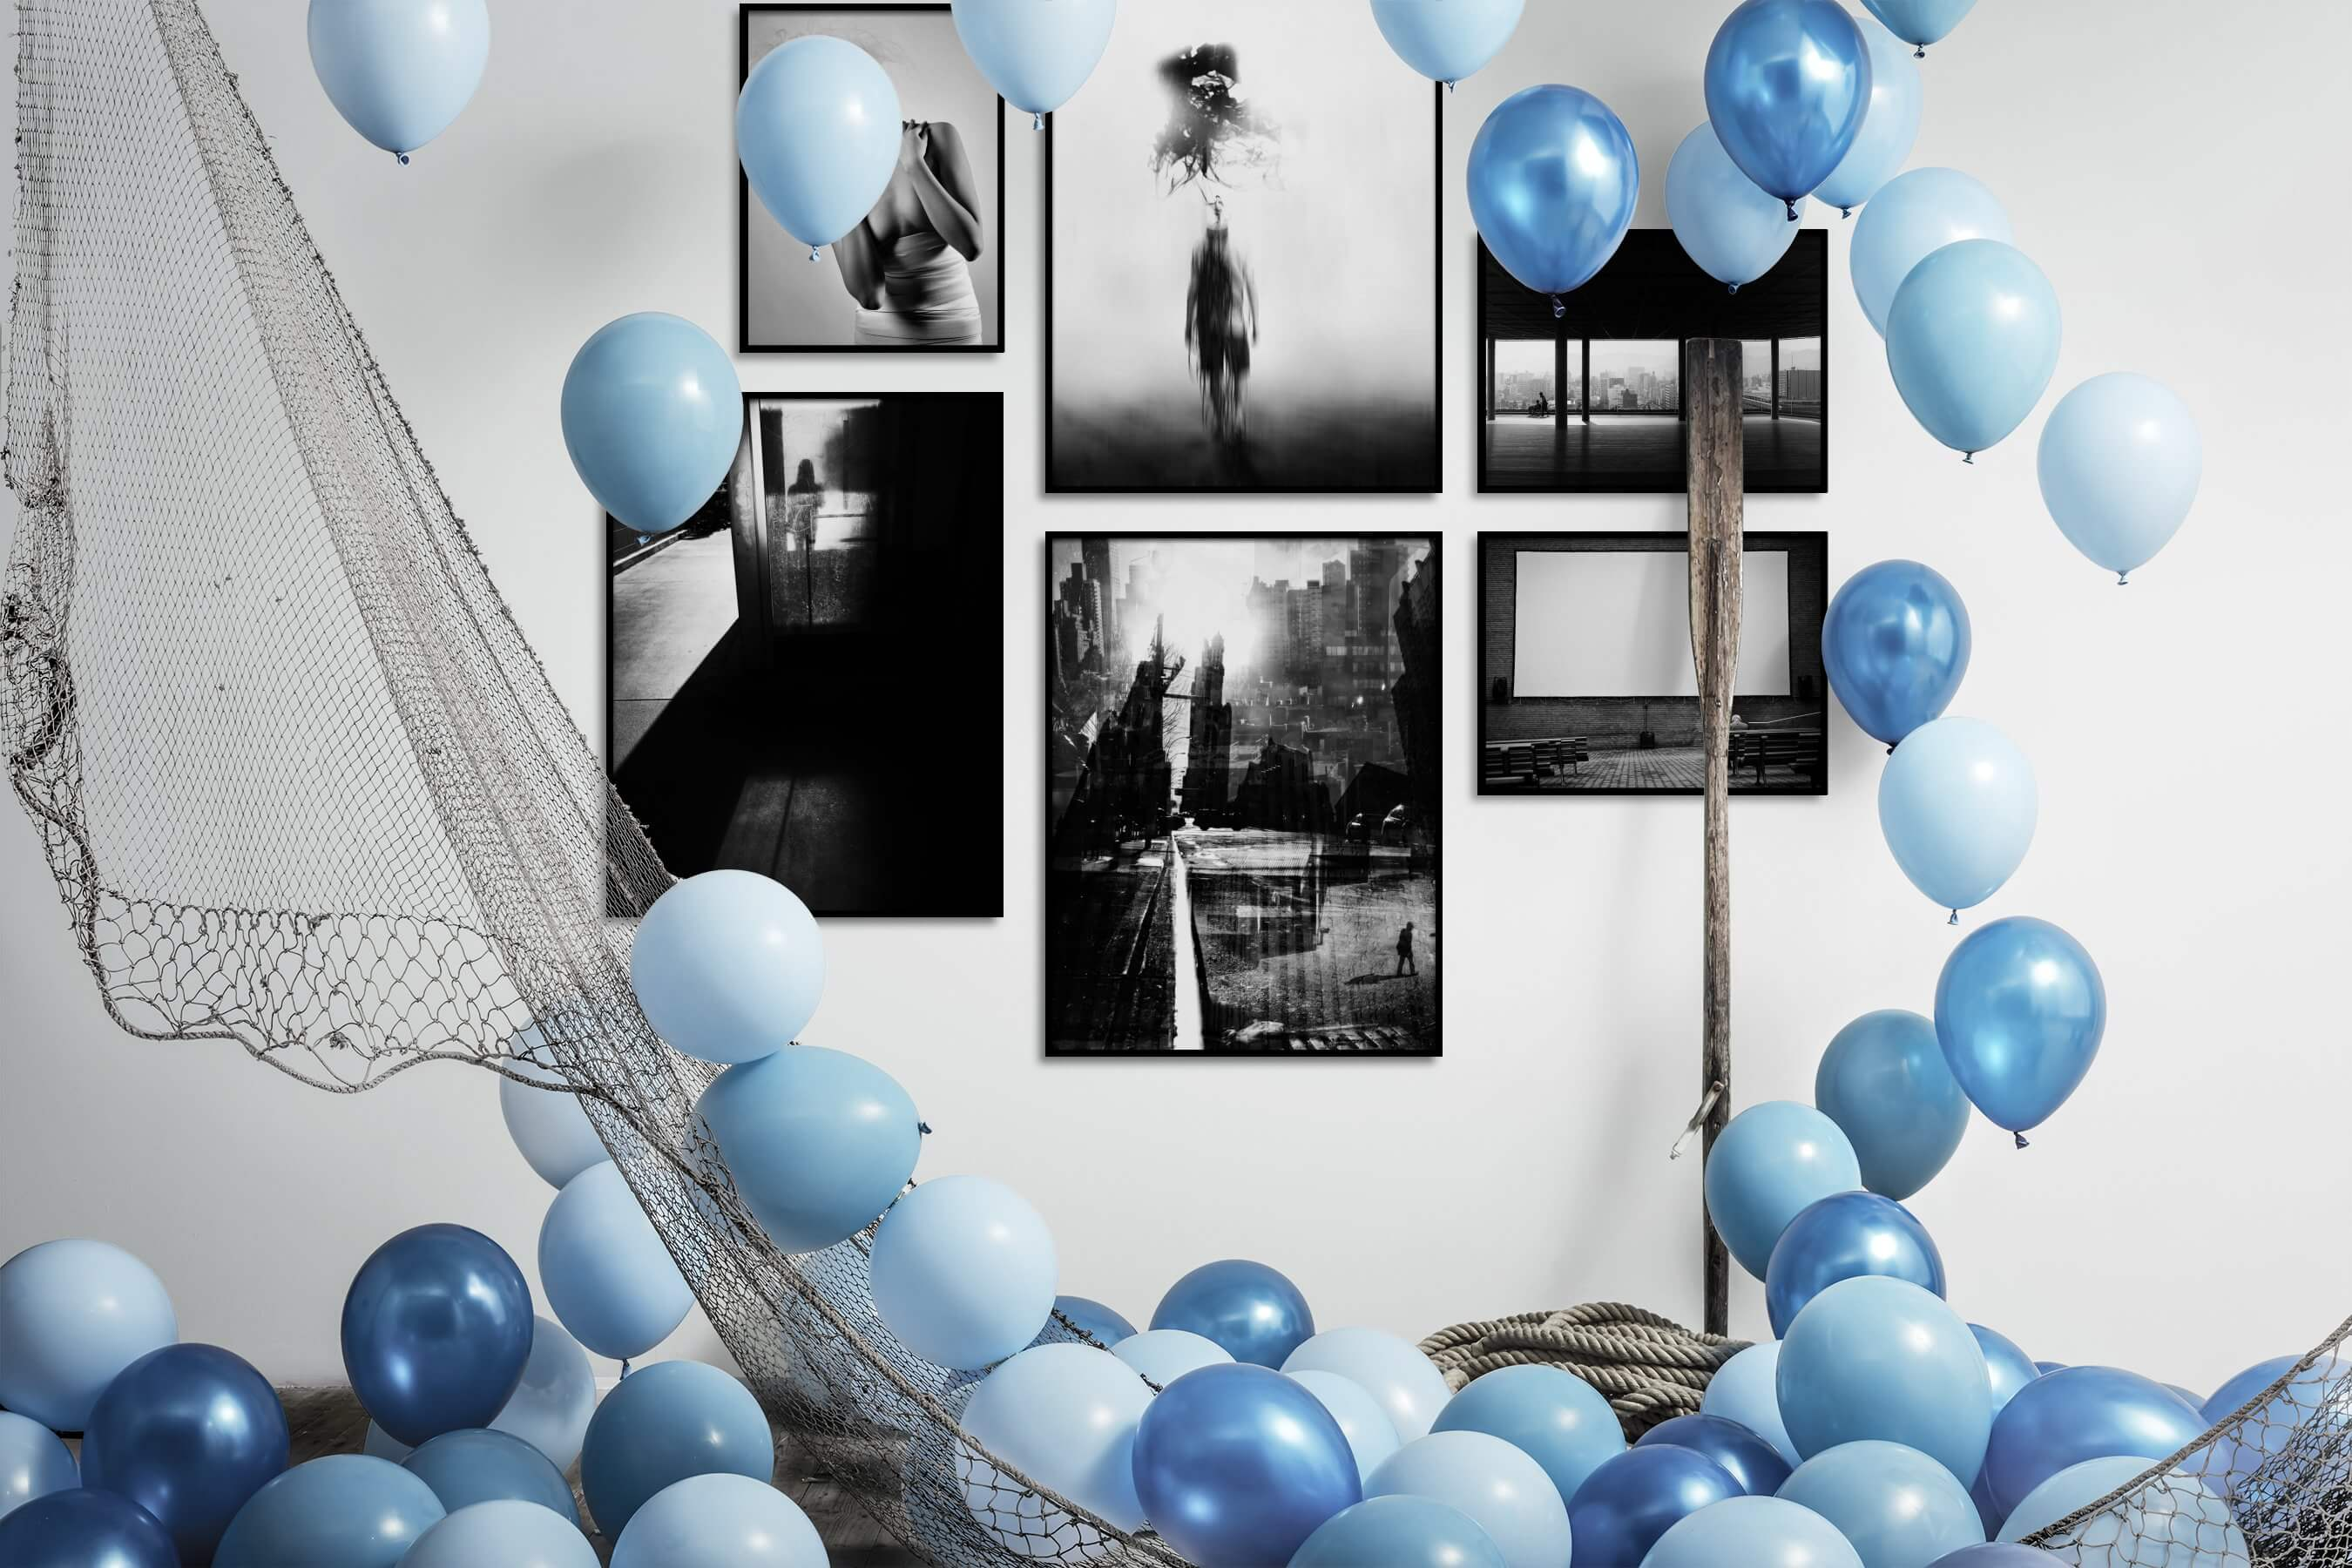 Gallery wall idea with six framed pictures arranged on a wall depicting Fashion & Beauty, Black & White, Artsy, For the Minimalist, City Life, For the Maximalist, Americana, and Dark Tones